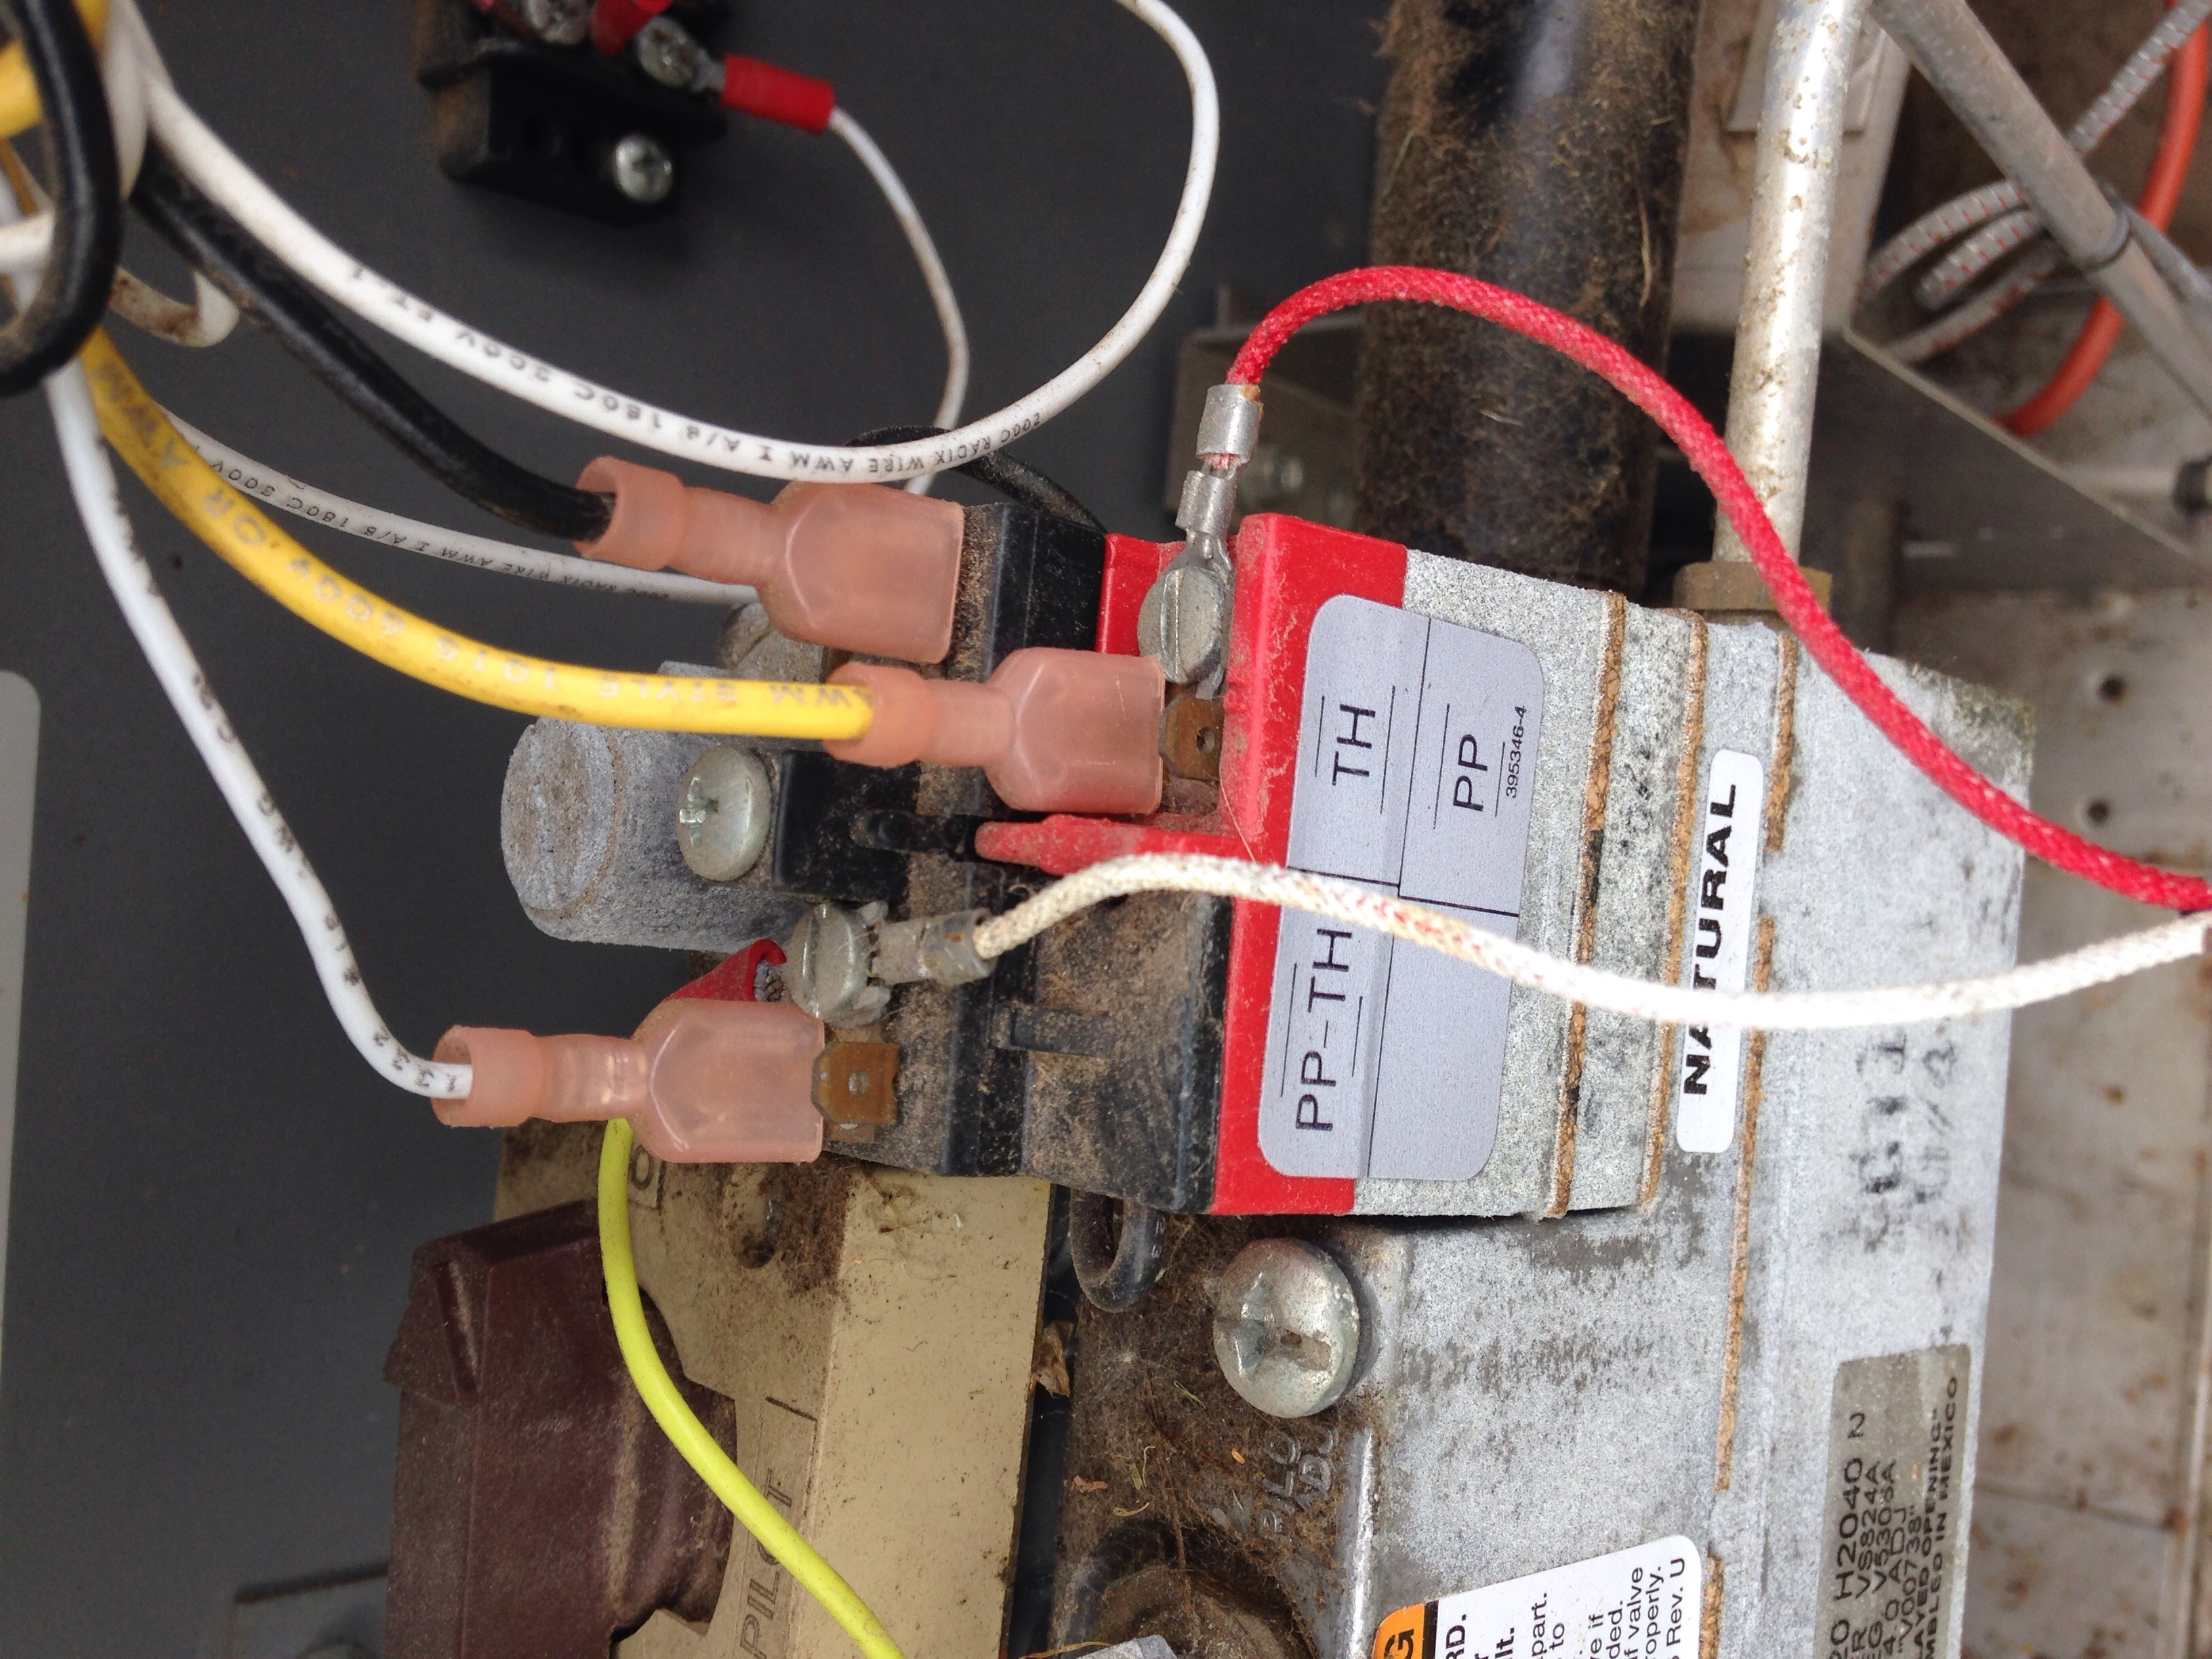 Jandy Lj175n Wiring Diagram Another Blog About Pool Control Lite2 Heater Problems Rh Justanswer Com